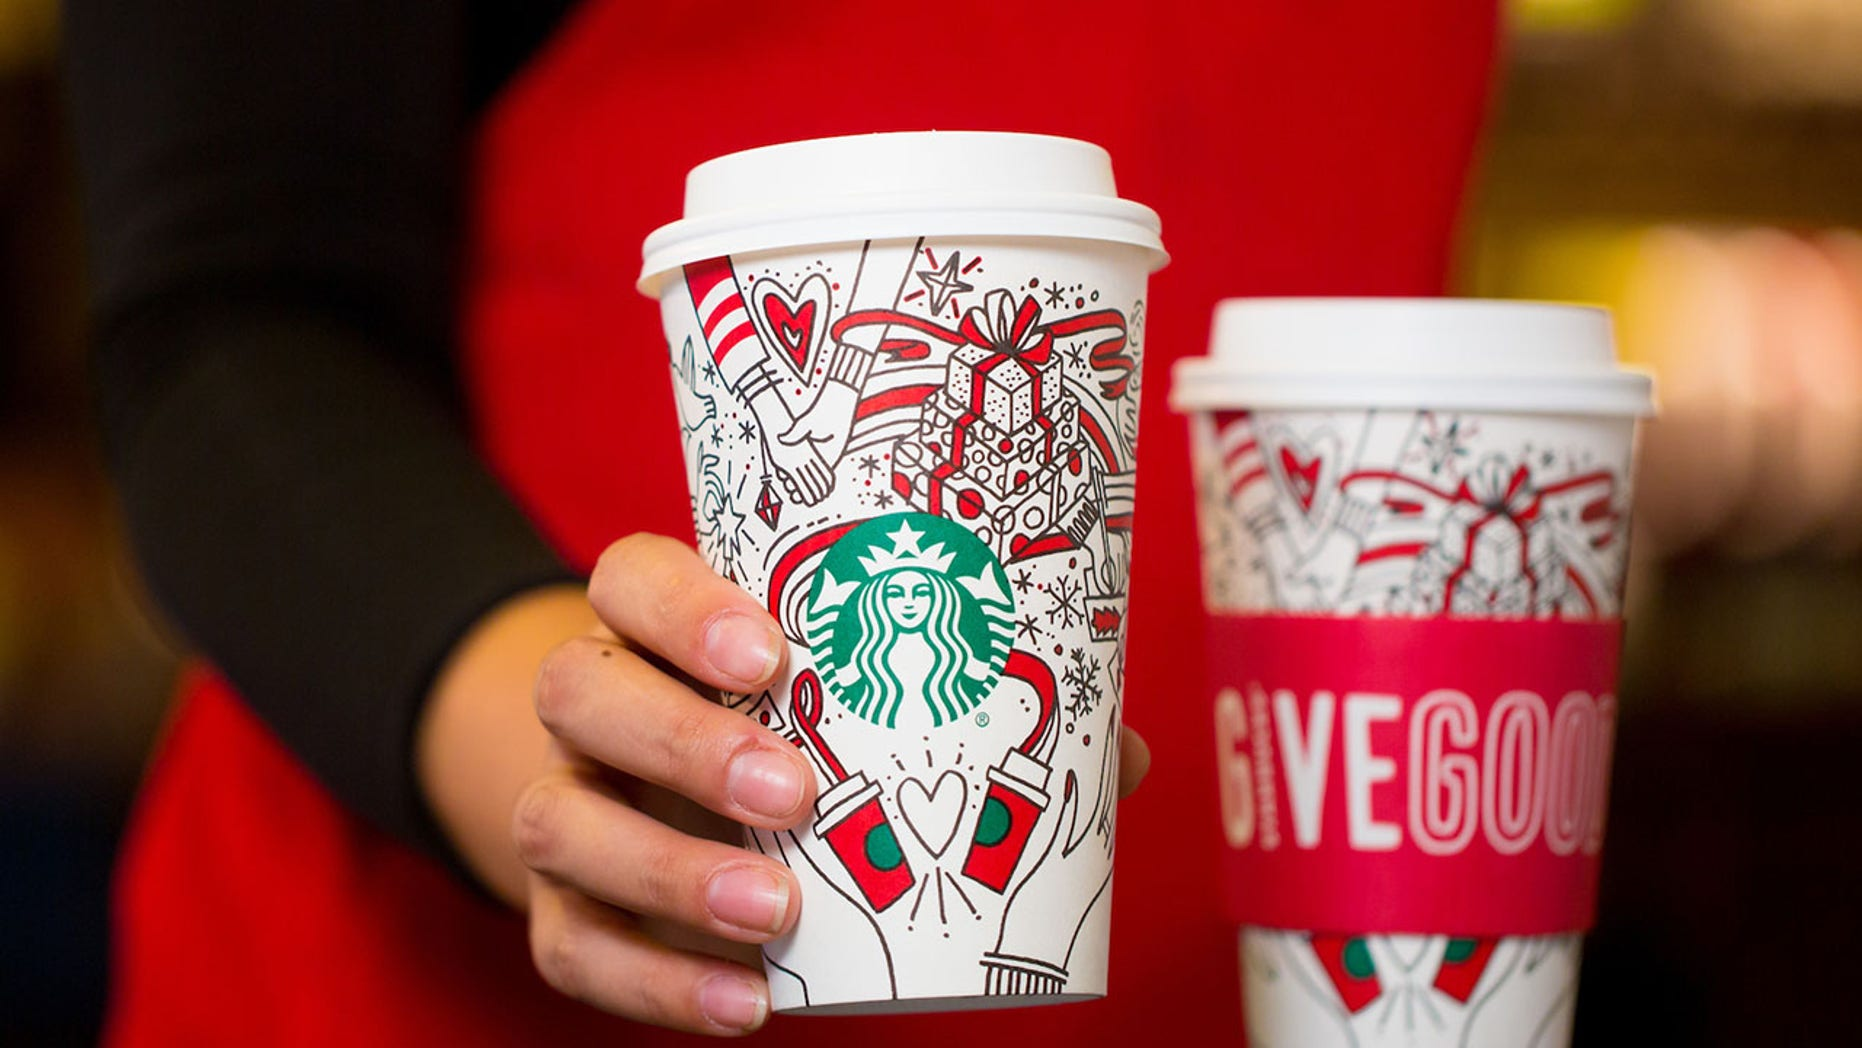 Starbucks' holiday cup illustrations are creating controversy once again.